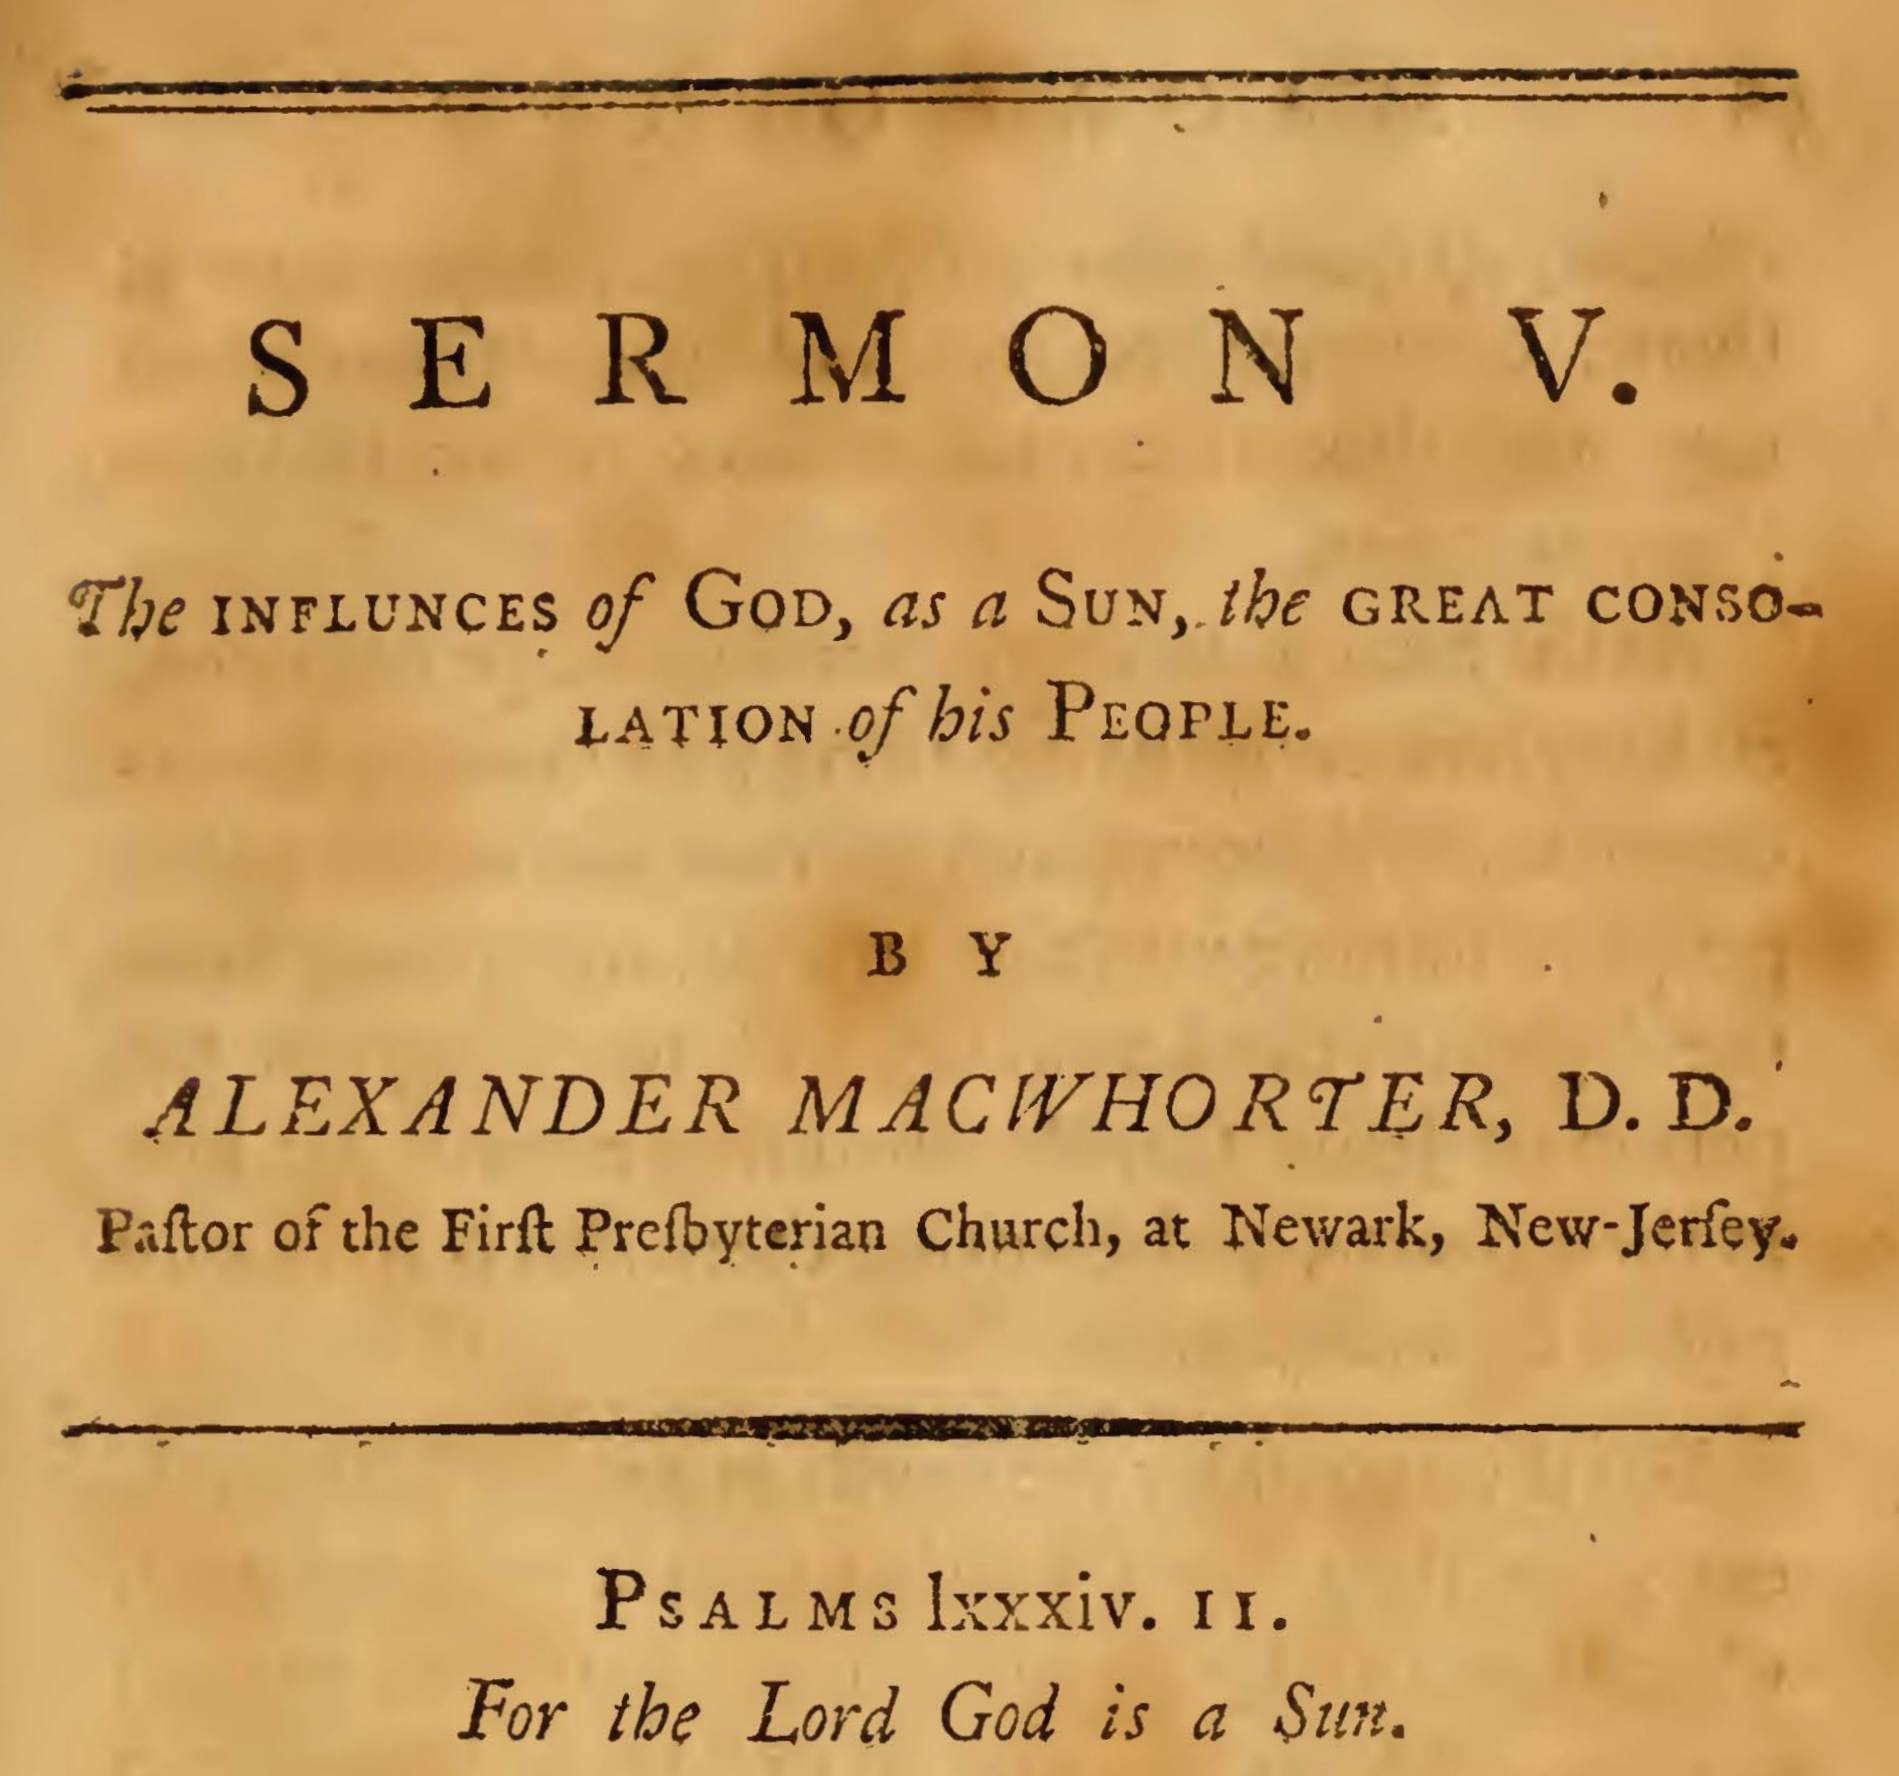 MacWhorter, Alexander, The Influences of God as a Sun Title Page.jpg